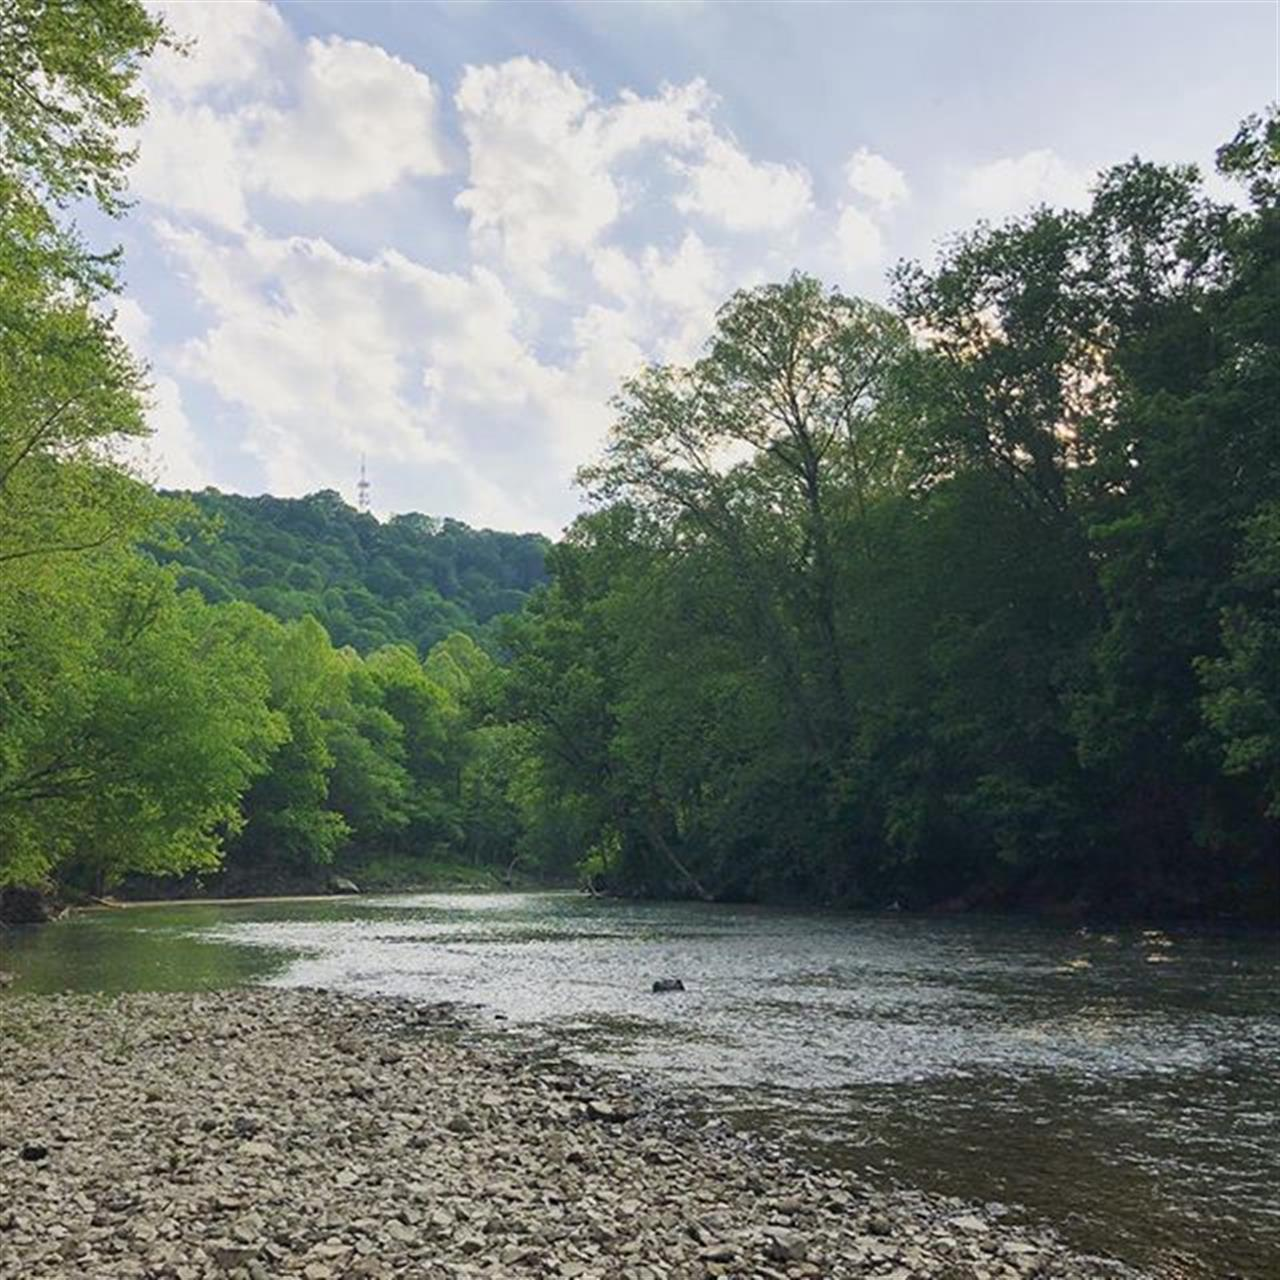 Daniel Boone said, Heaven must be a Kentucky kind of place, and I tend to agree. Love this #LaurelCo view. Thanks for letting me be your #KYRealtor  #loveLondonKY #leadingre #leadingrelocal #whataview #kentucky #river